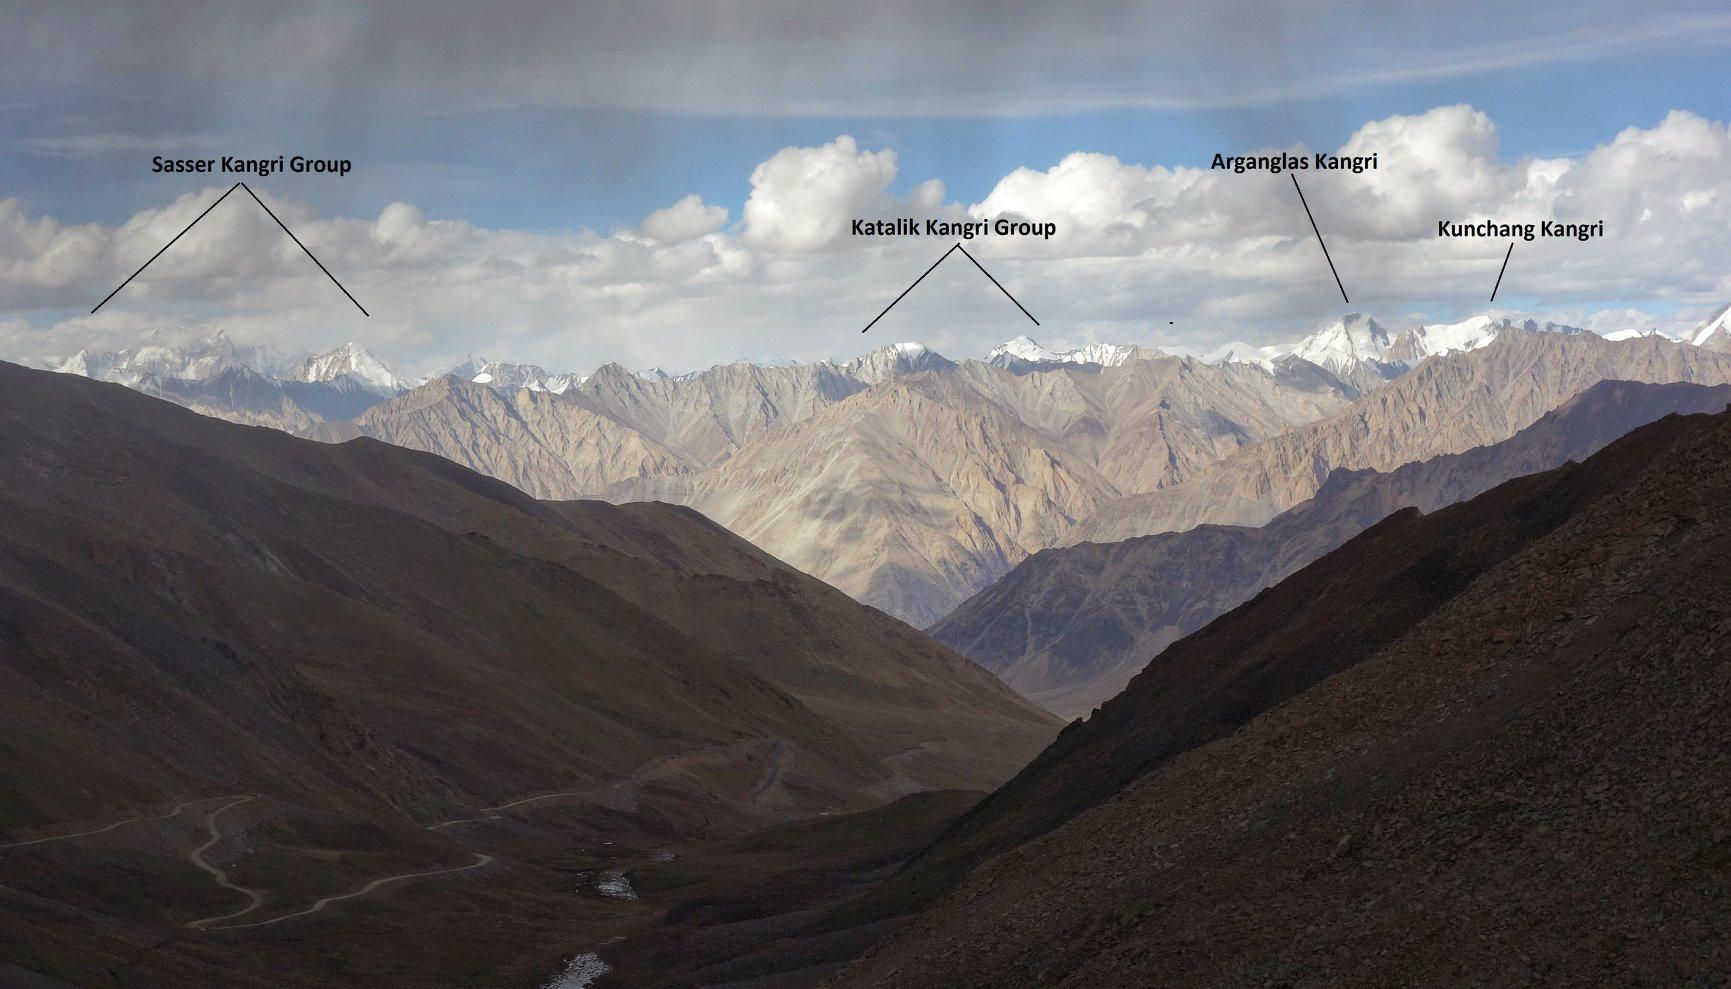 The Karakorams as seen from Khardung La.